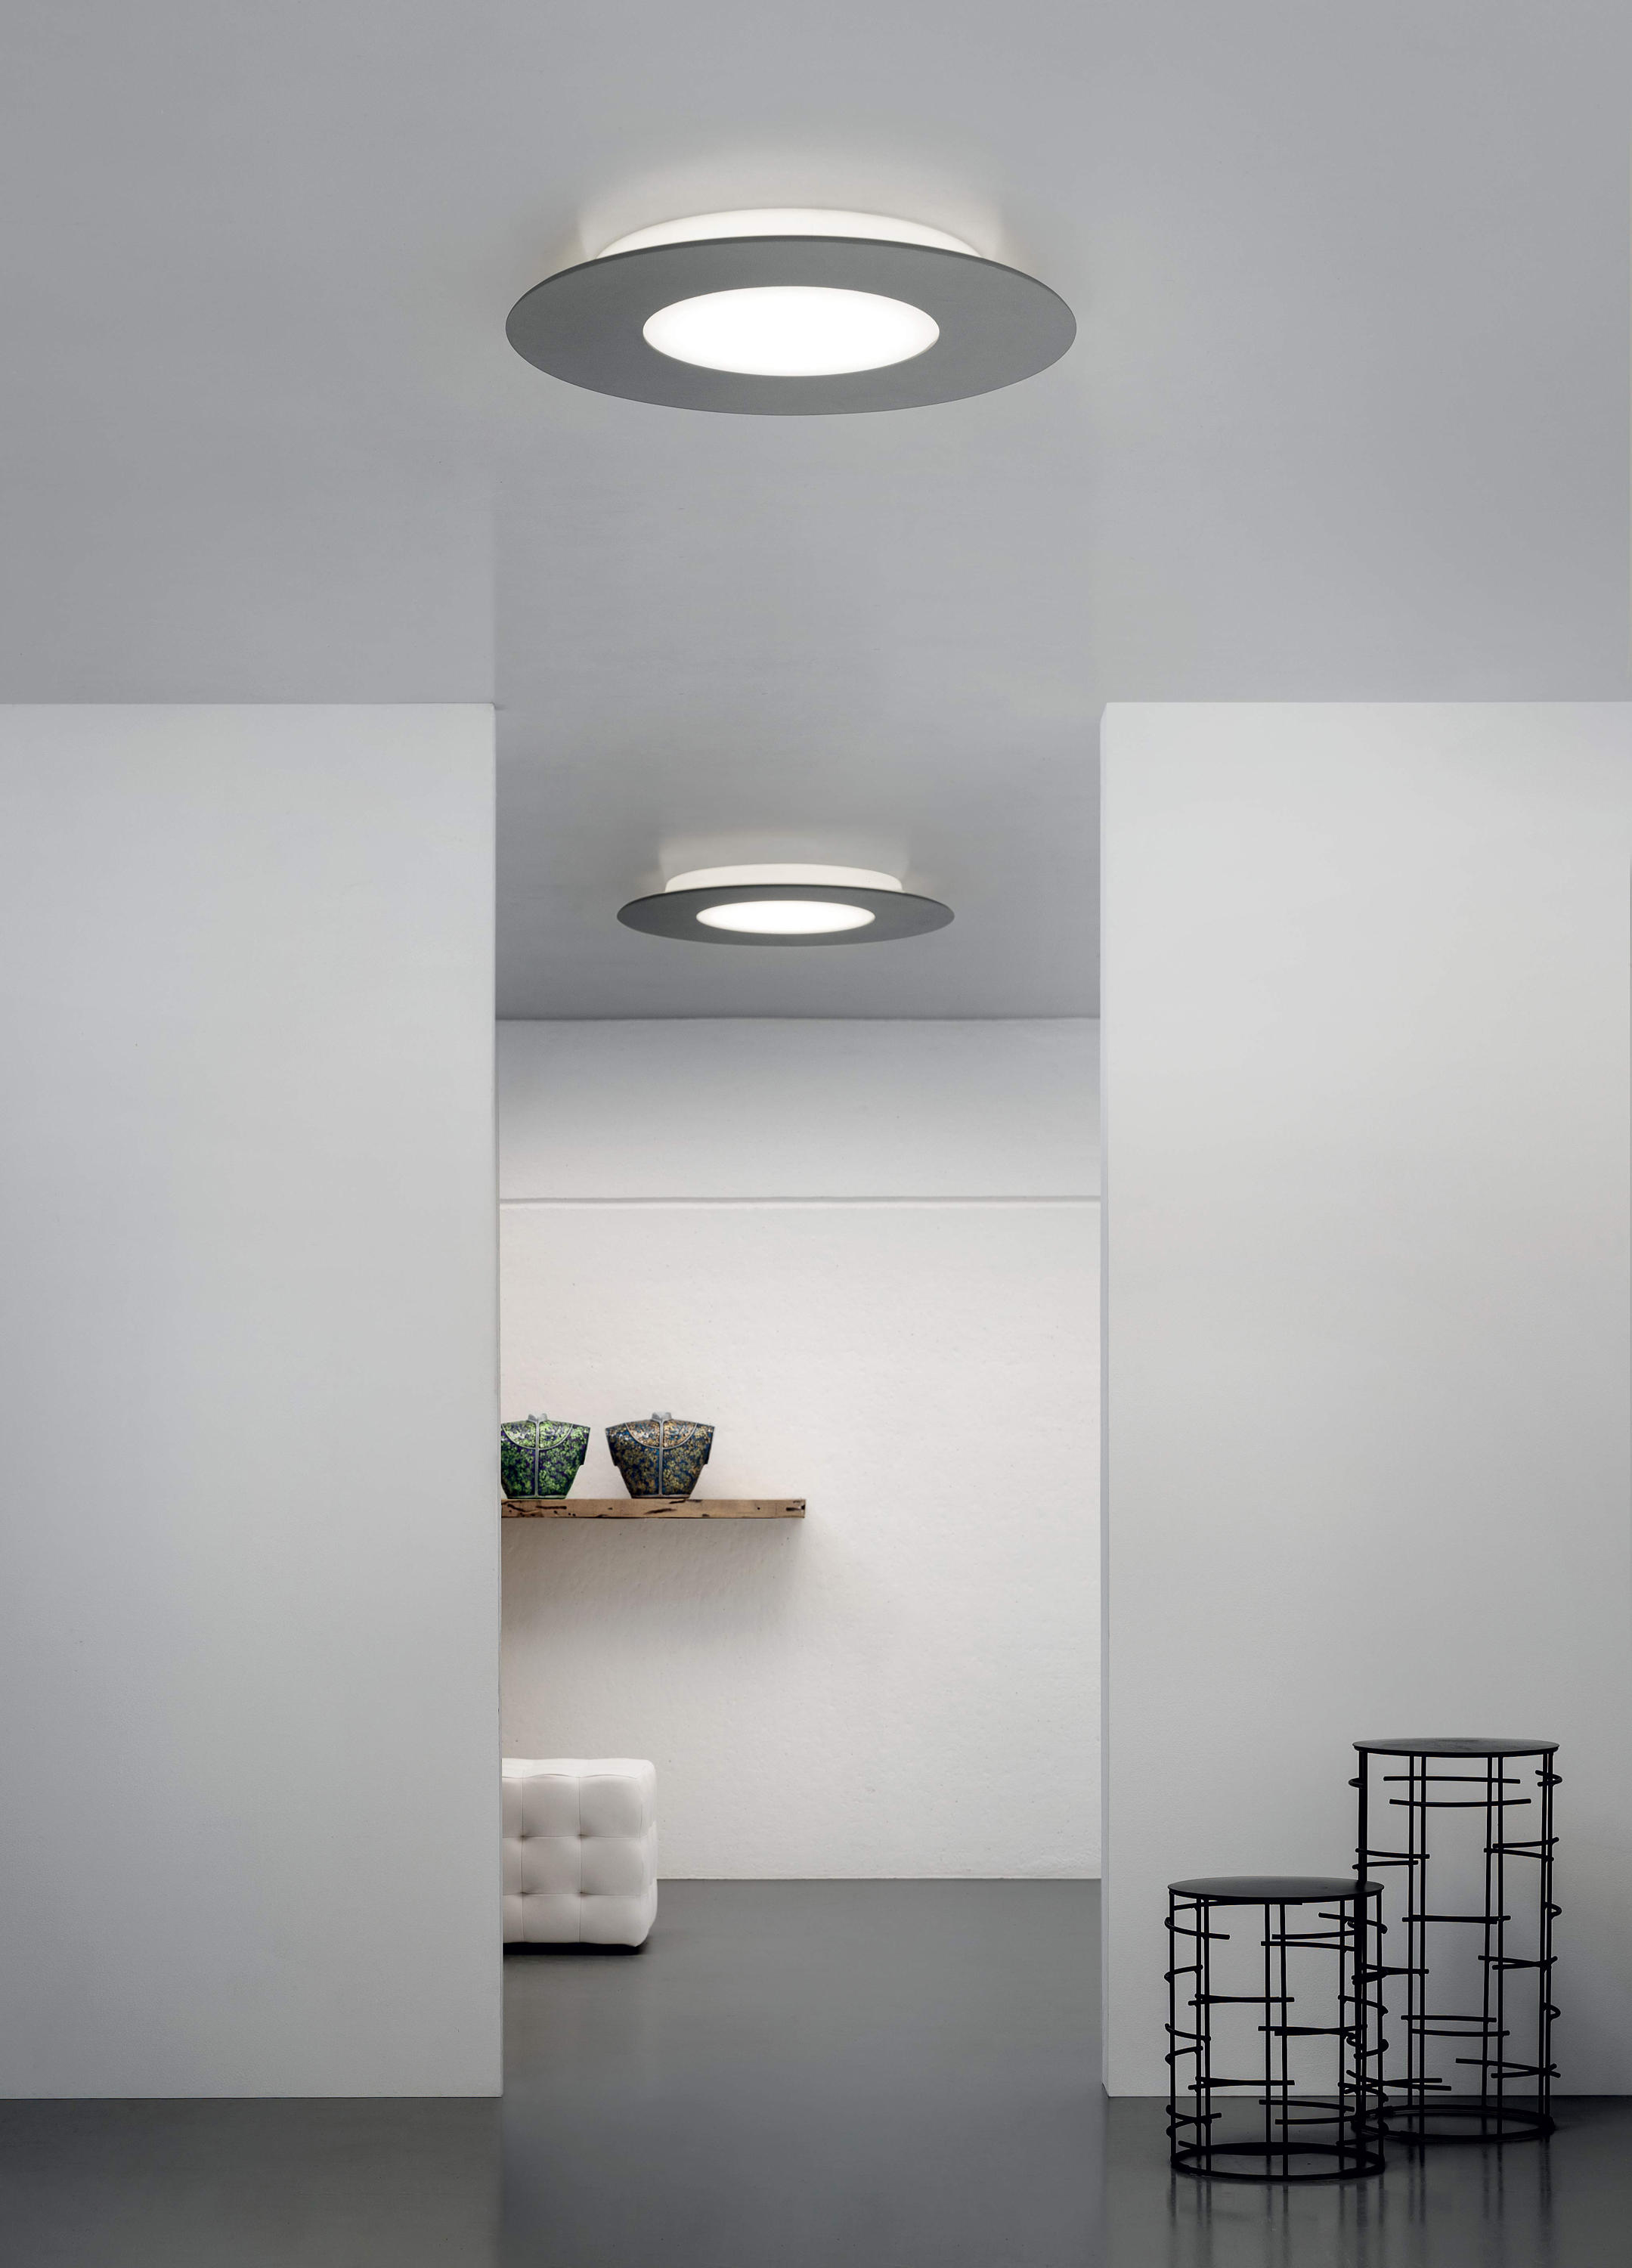 SQUARE_SQ - Ceiling lights from Linea Light Group | Architonic